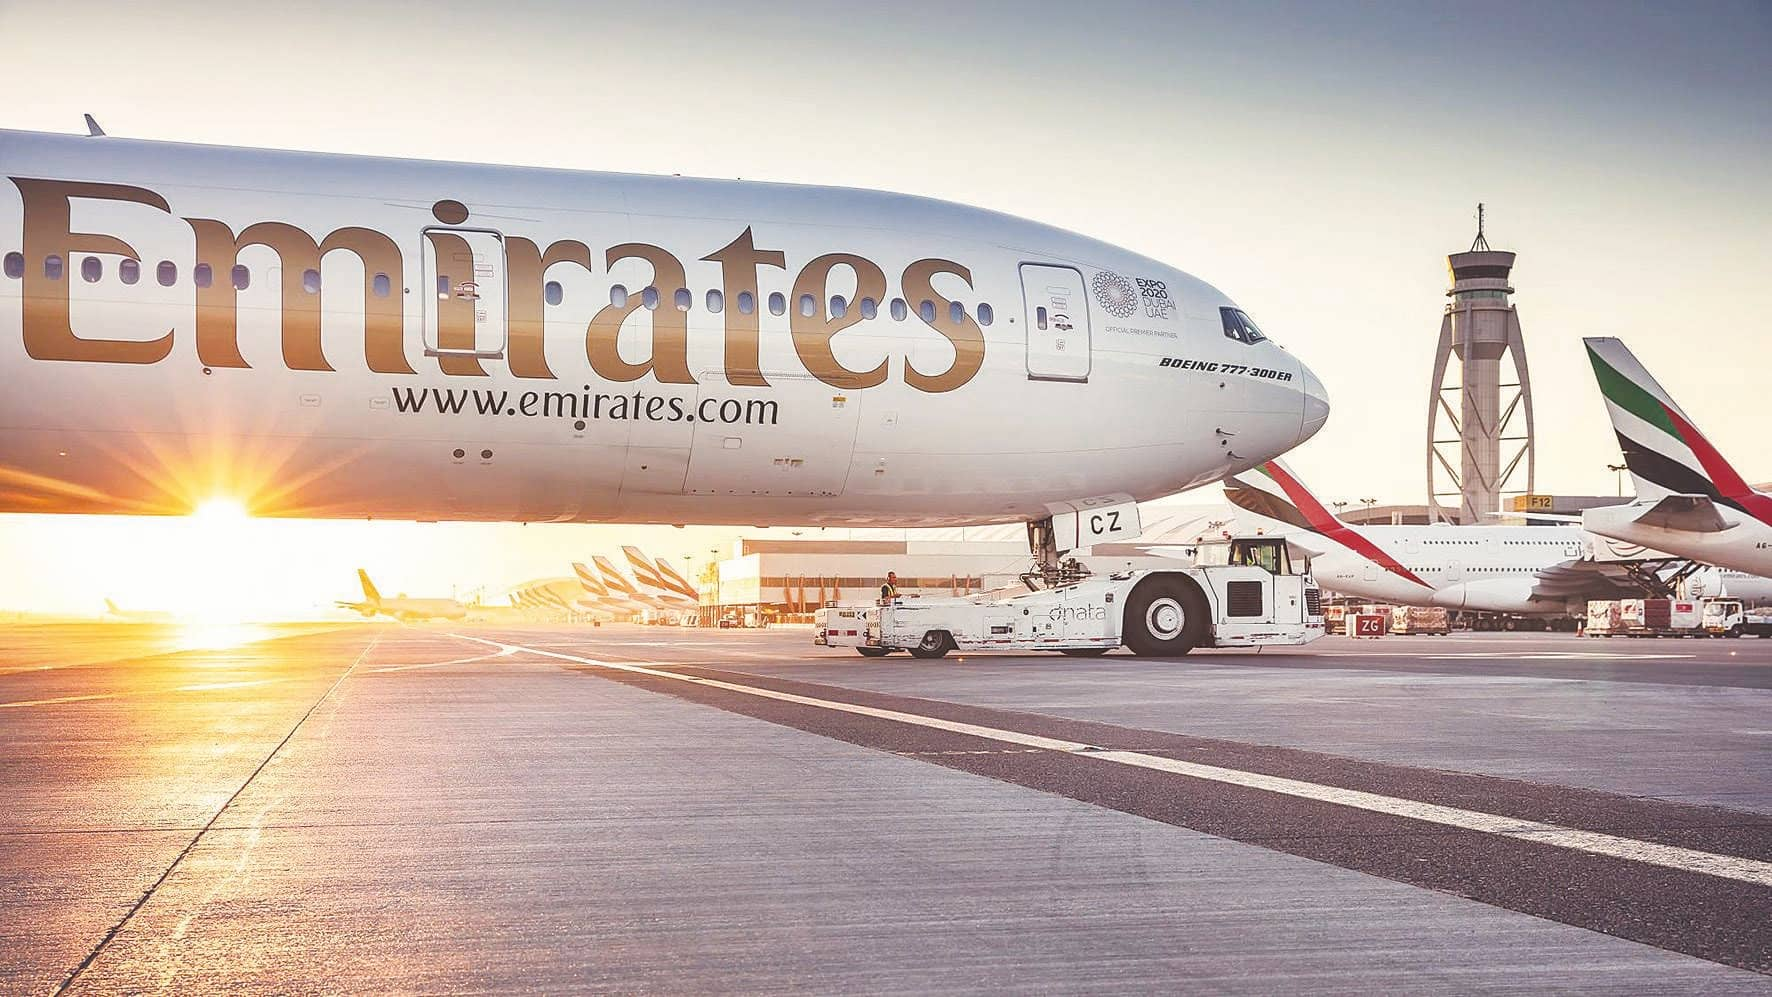 Emirates' flights to 5 Indian cities; UAE to renew visas